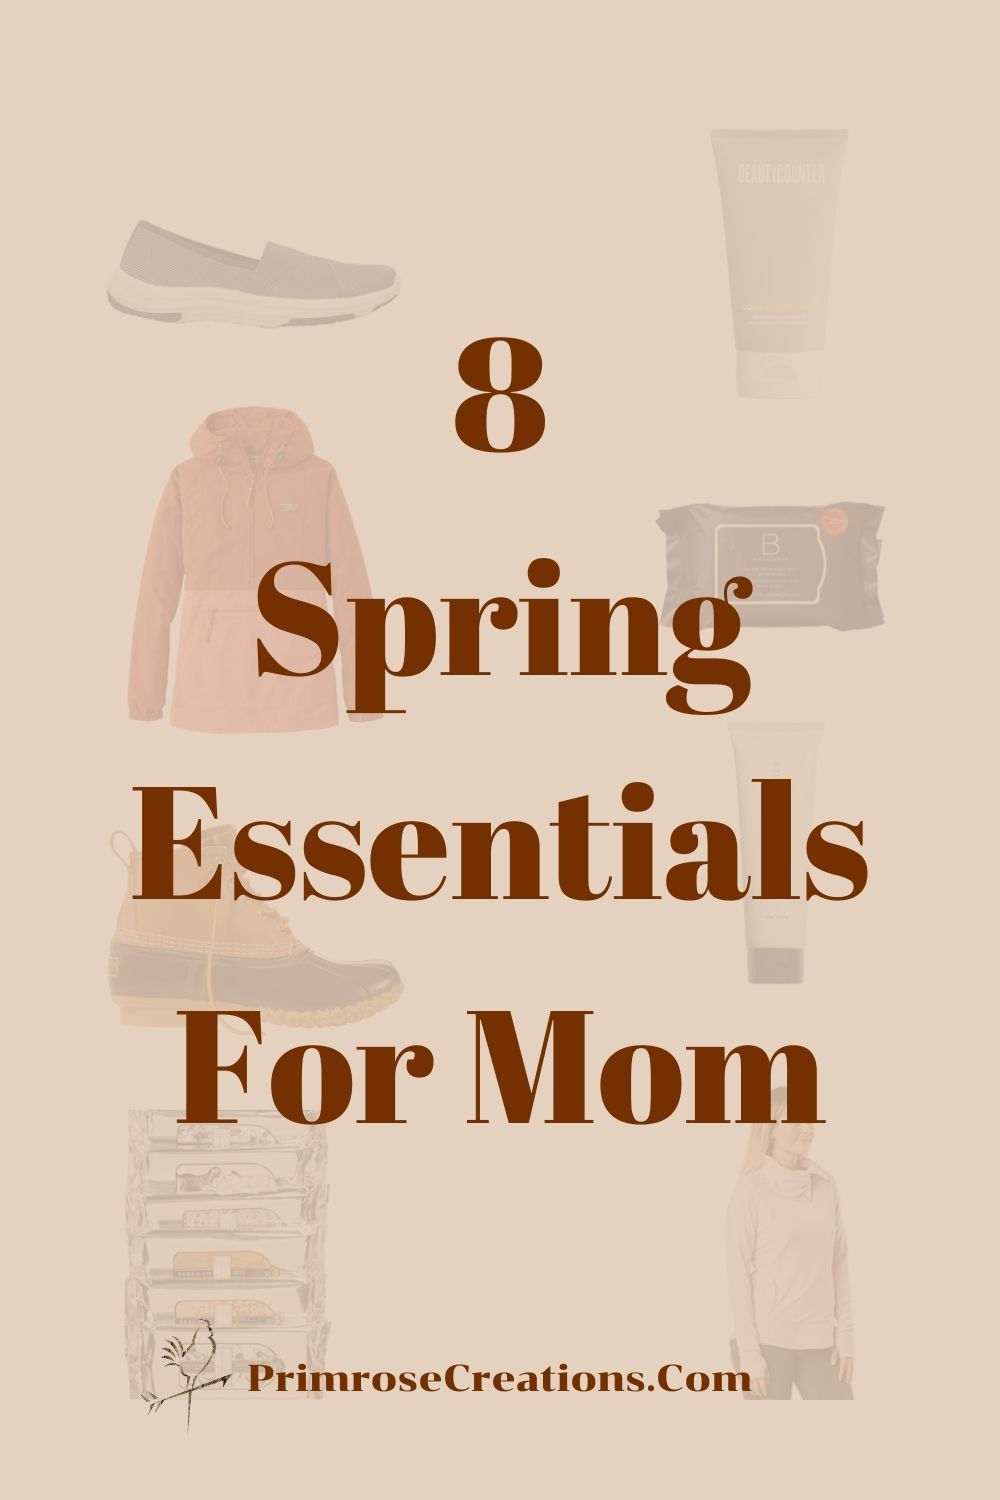 Giving gifts doesn't have to be limited to Mother's Day. From the great outdoors to the silence of self-care, we've got the ultimate list of them all! Here are our Top 8 Lifestyle Gifts for mom this spring.